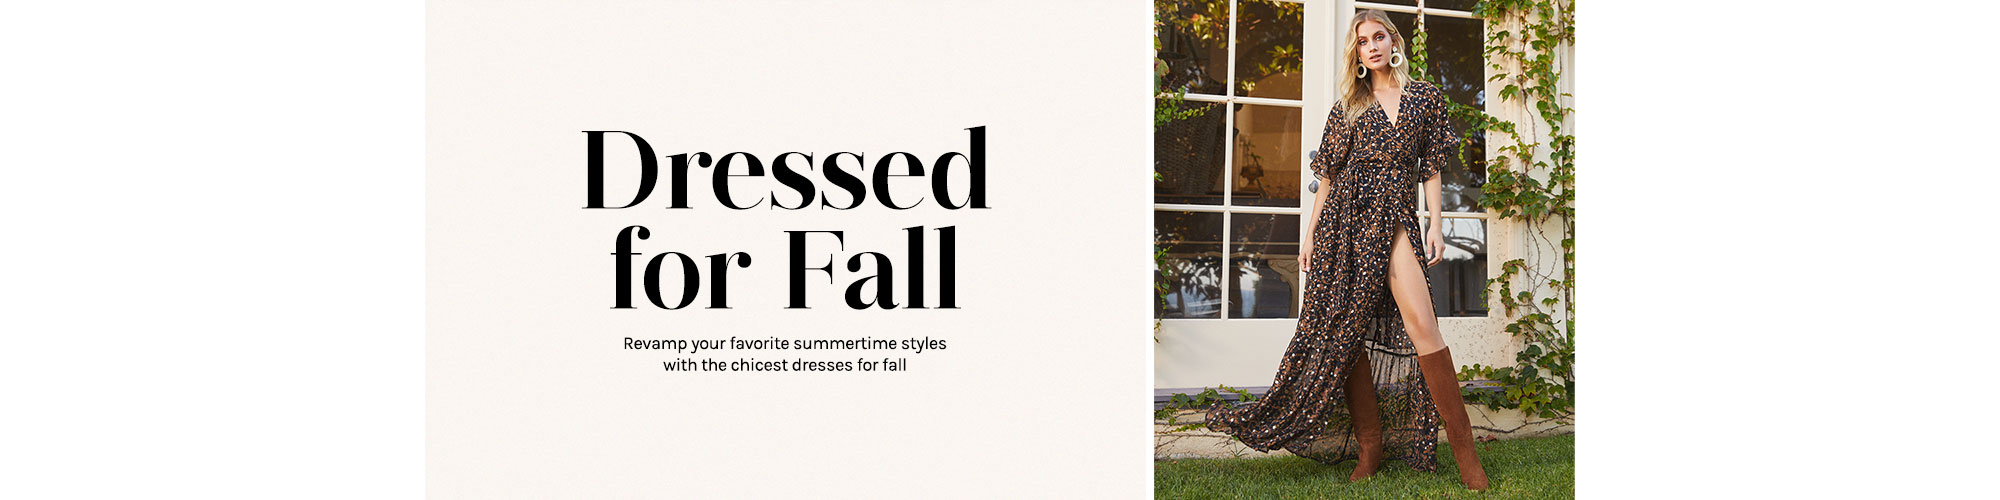 Dressed for Fall. Revamp your favorite summertime styles with the chicest dresses for fall.